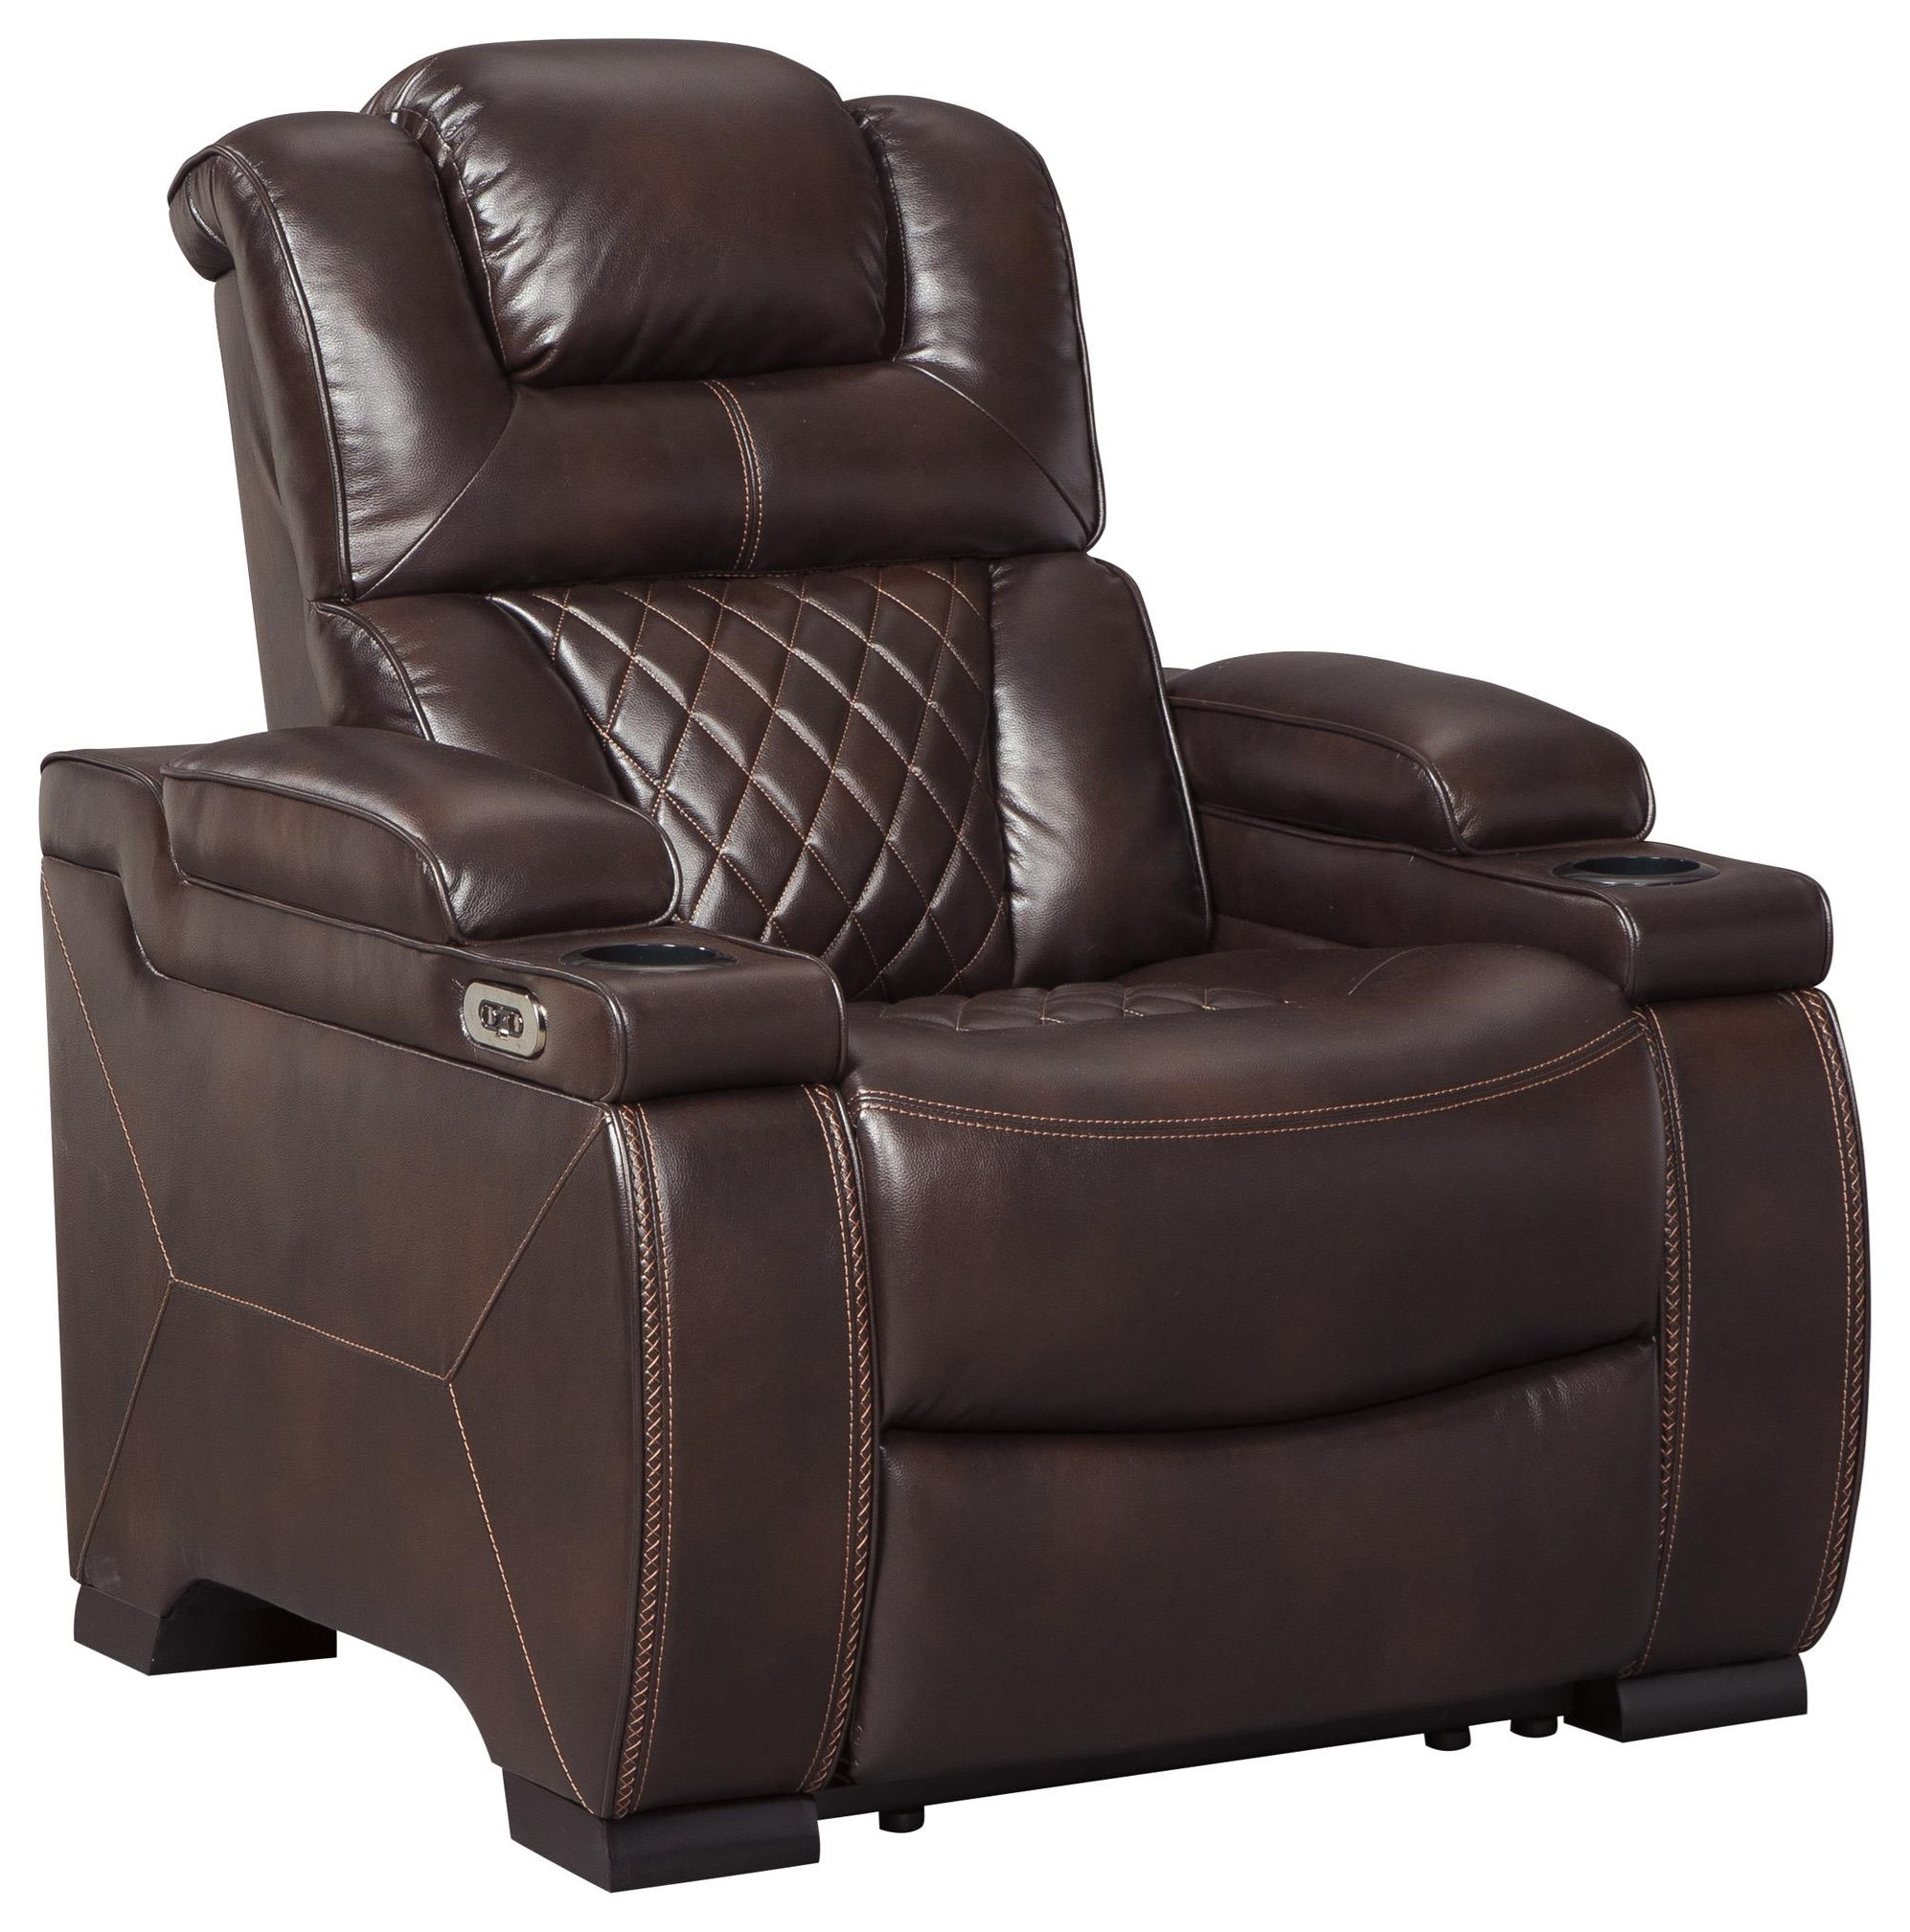 Warnerton 4 Power Recliners with Adjustable Headrest by Signature Design by Ashley at Sam Levitz Furniture